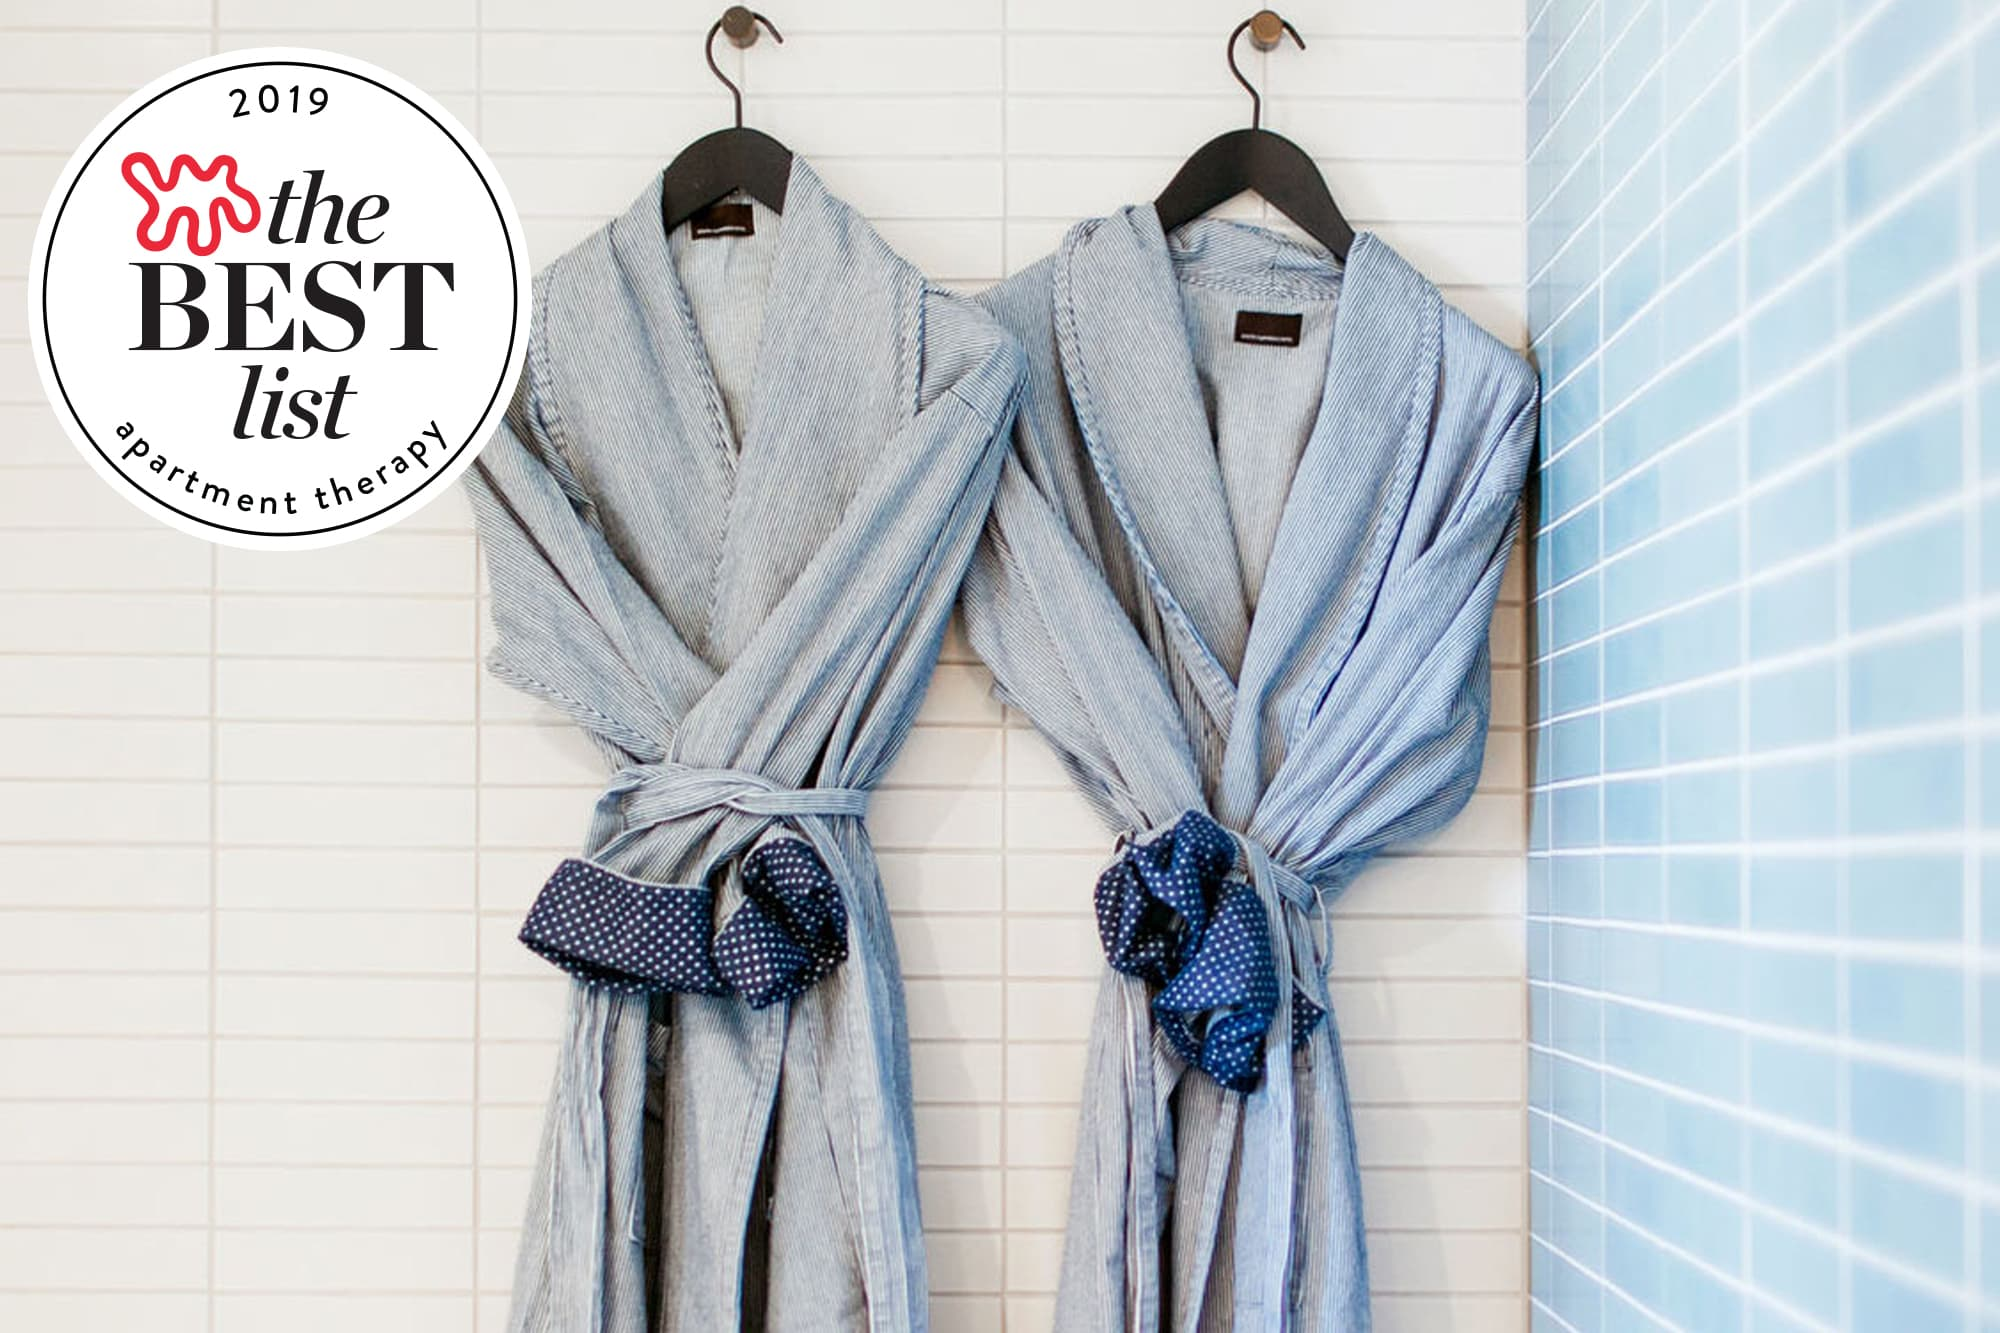 e243d58d288 The Best Bathrobes for Lounging